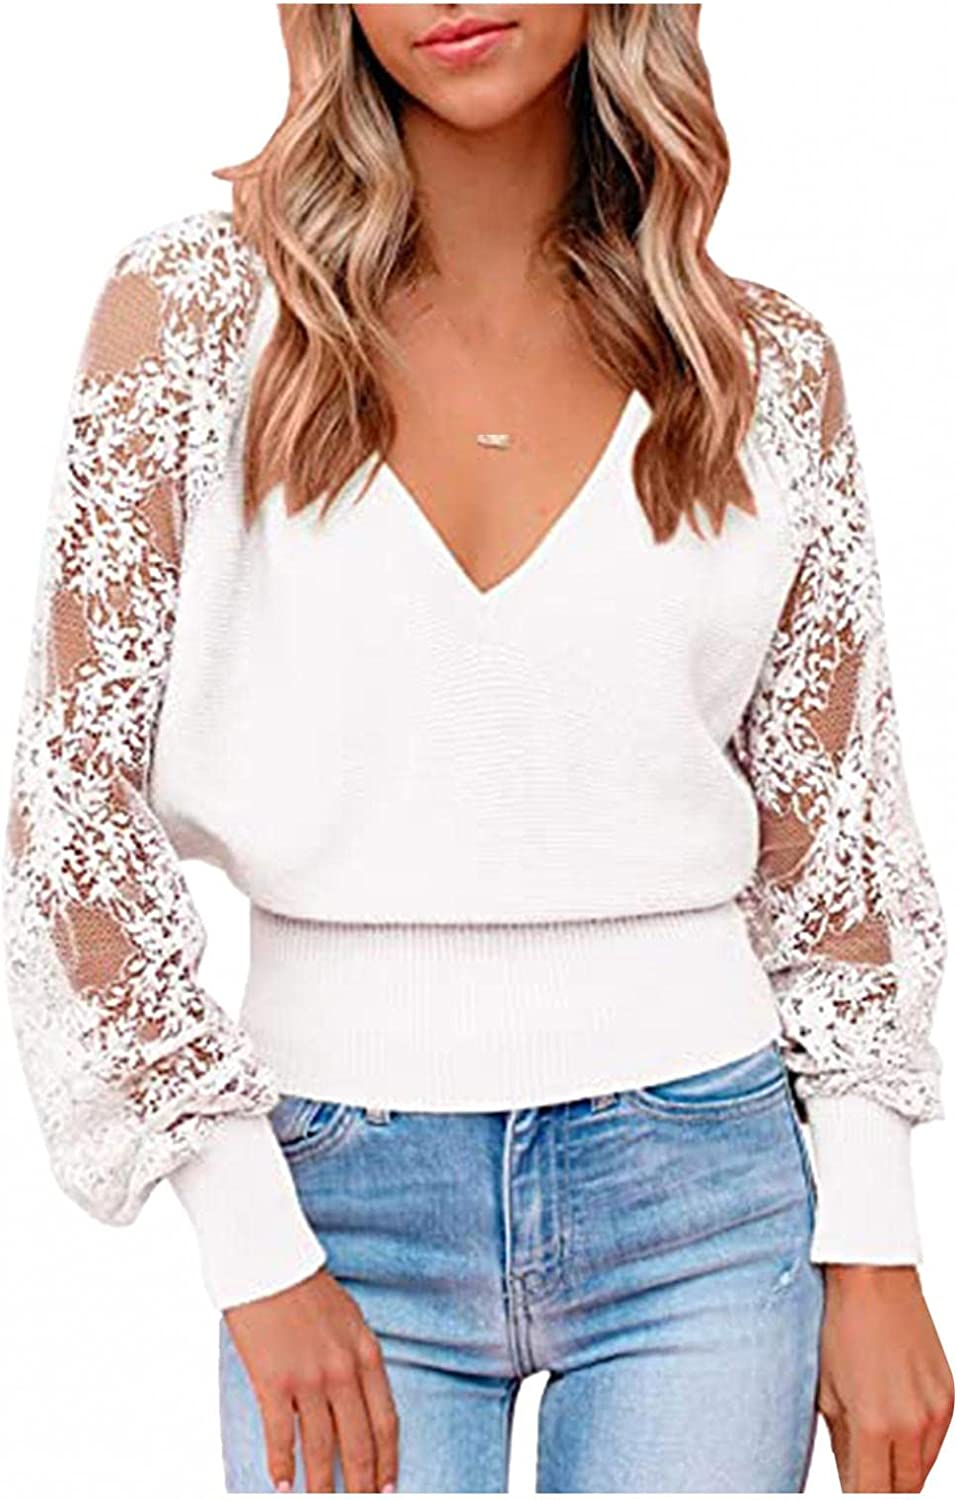 Women's Long Sleeve V Neck Lace Patchwork Backless Comfy Winter Knit Pullover Sweater Jumper Tops